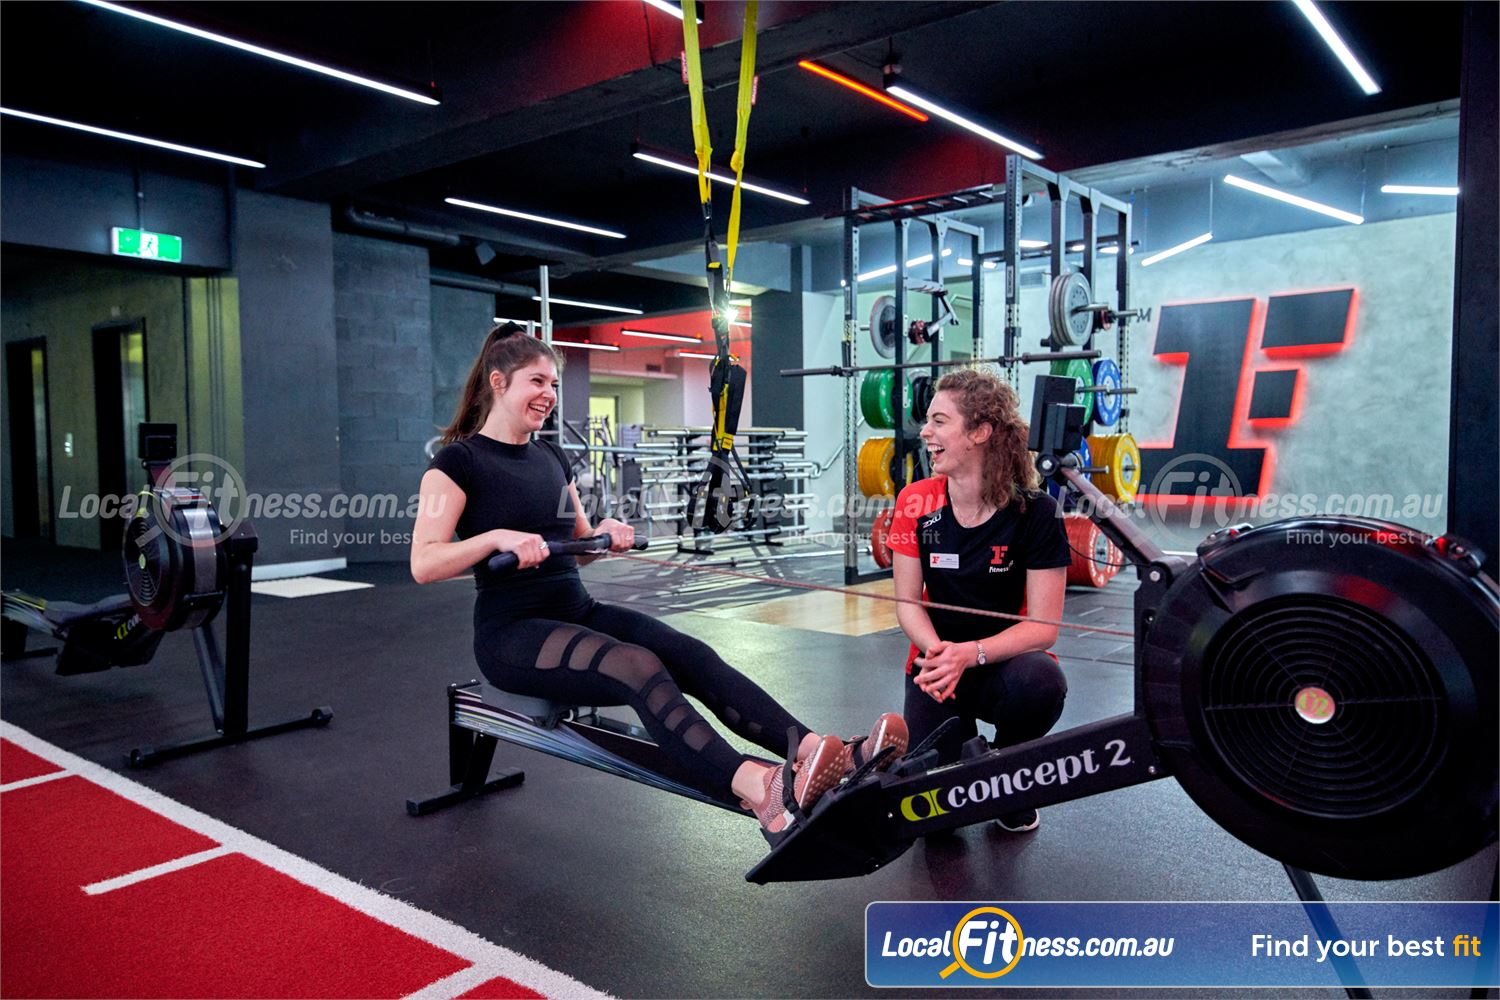 Fitness First Erina Fair Erina Our Erina Fair gym team can take you through a HIIT rowing workout.